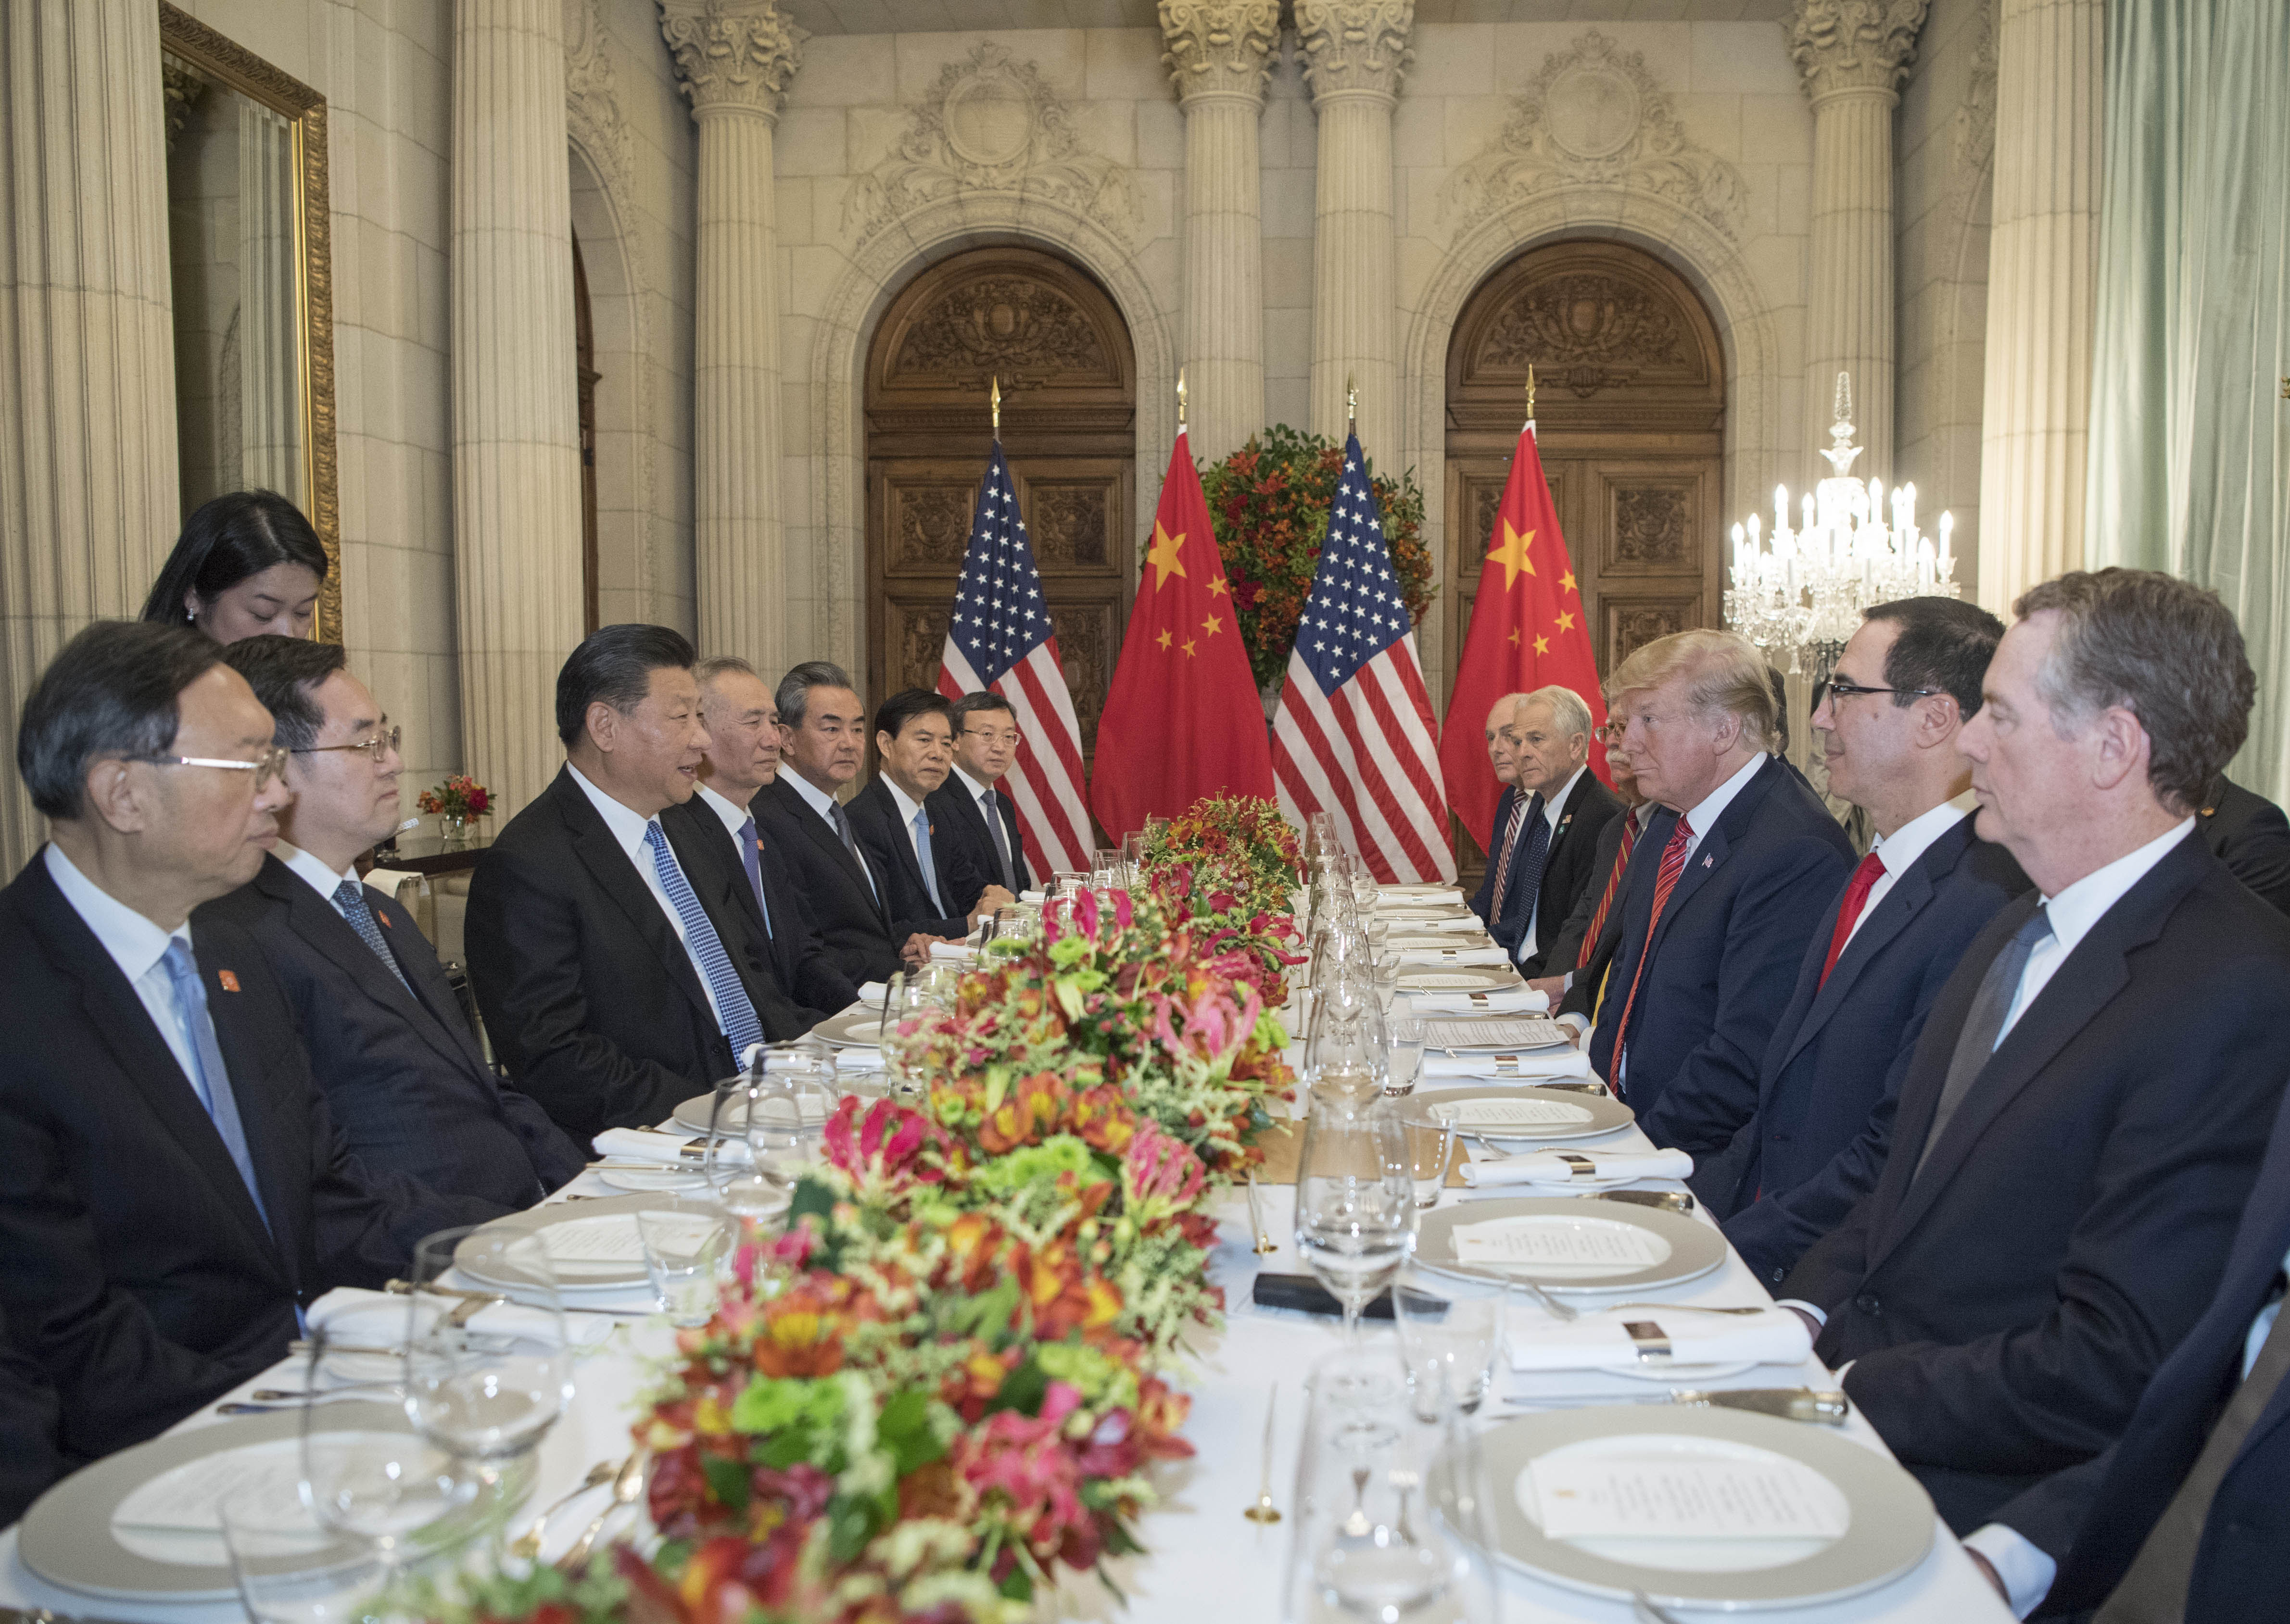 Xi, Trump working dinner concludes after more than two hours